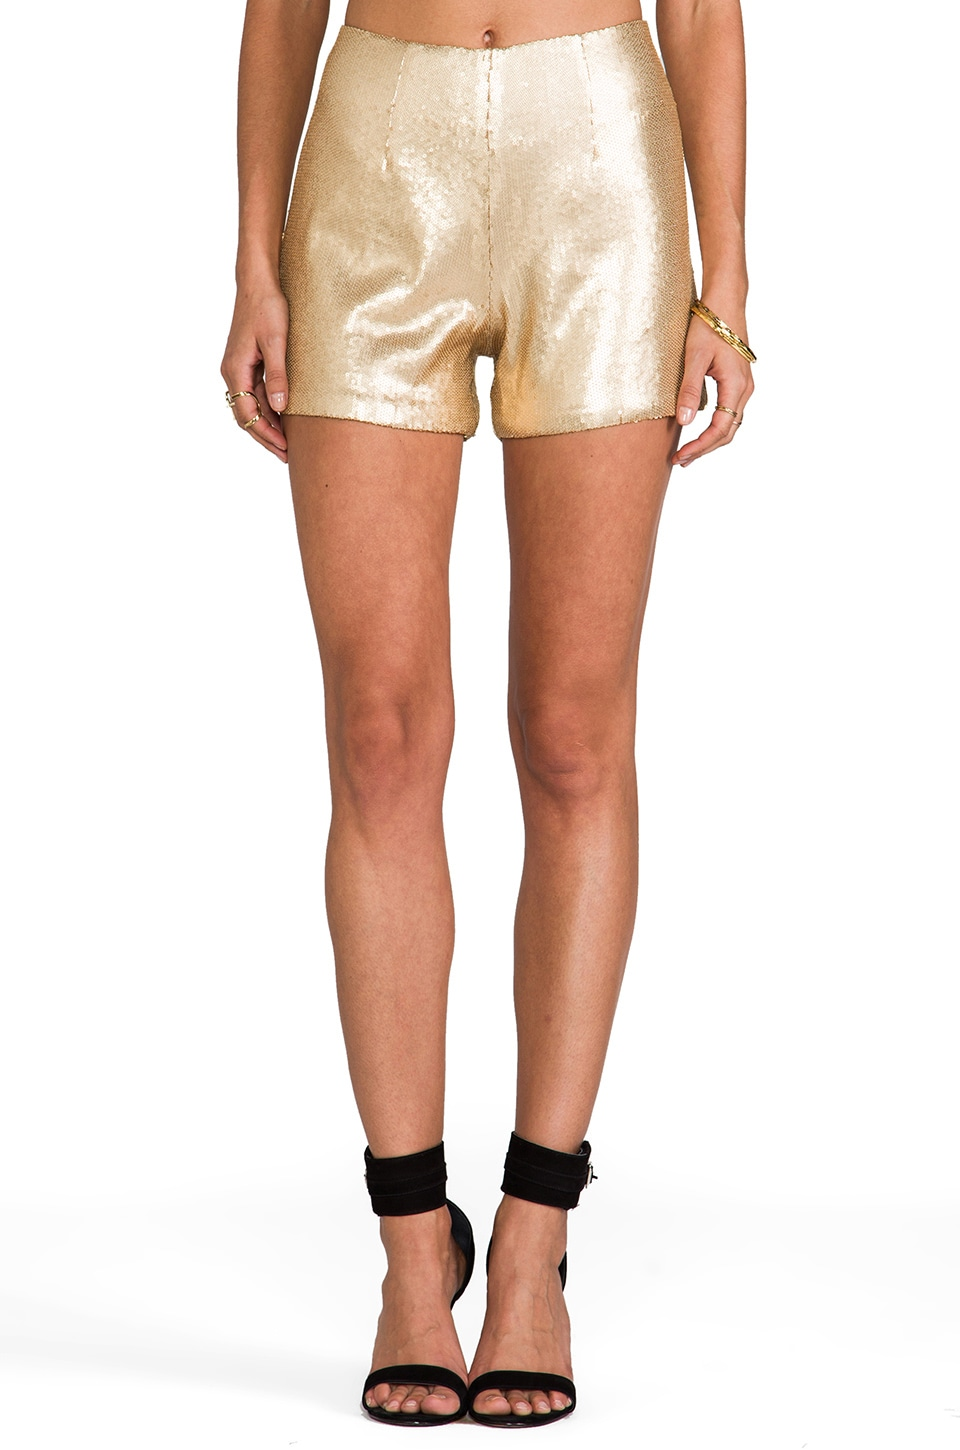 Naven Hot Shorts in Gold Shimmer